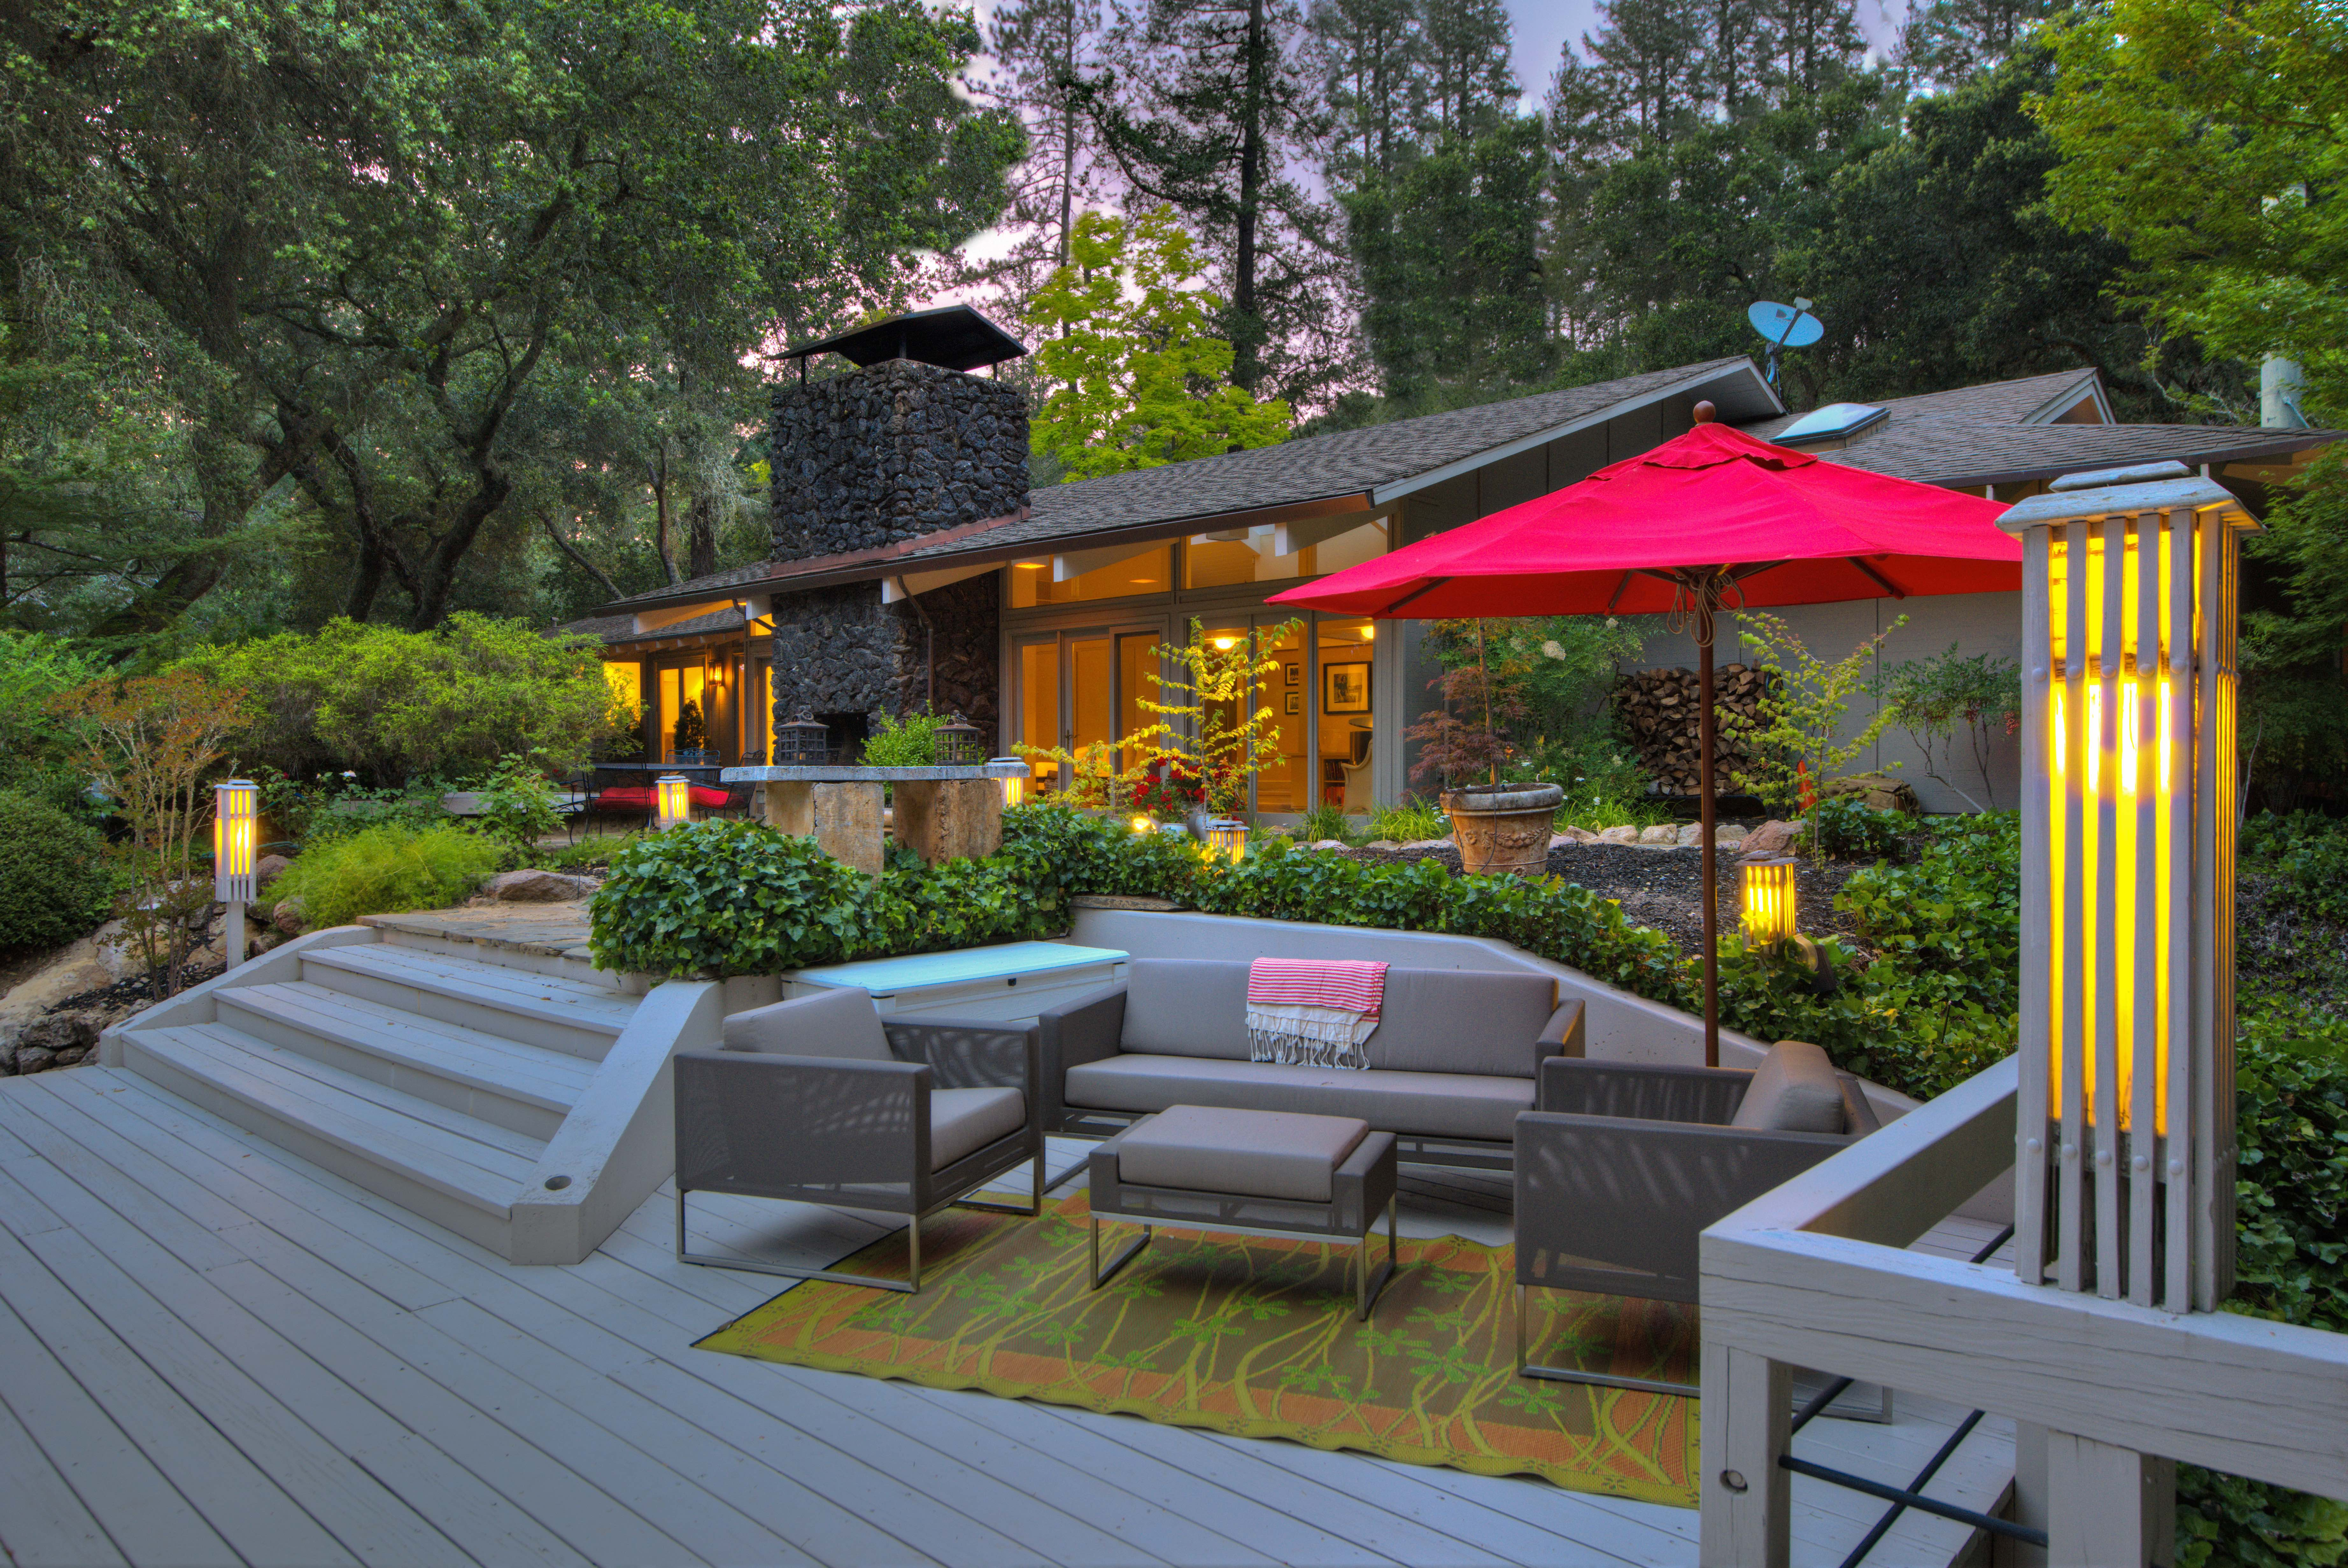 Single Family Home for Sale at Charming Meadowood Country Club Setting 540 Meadowood Lane St. Helena, California, 94574 United States